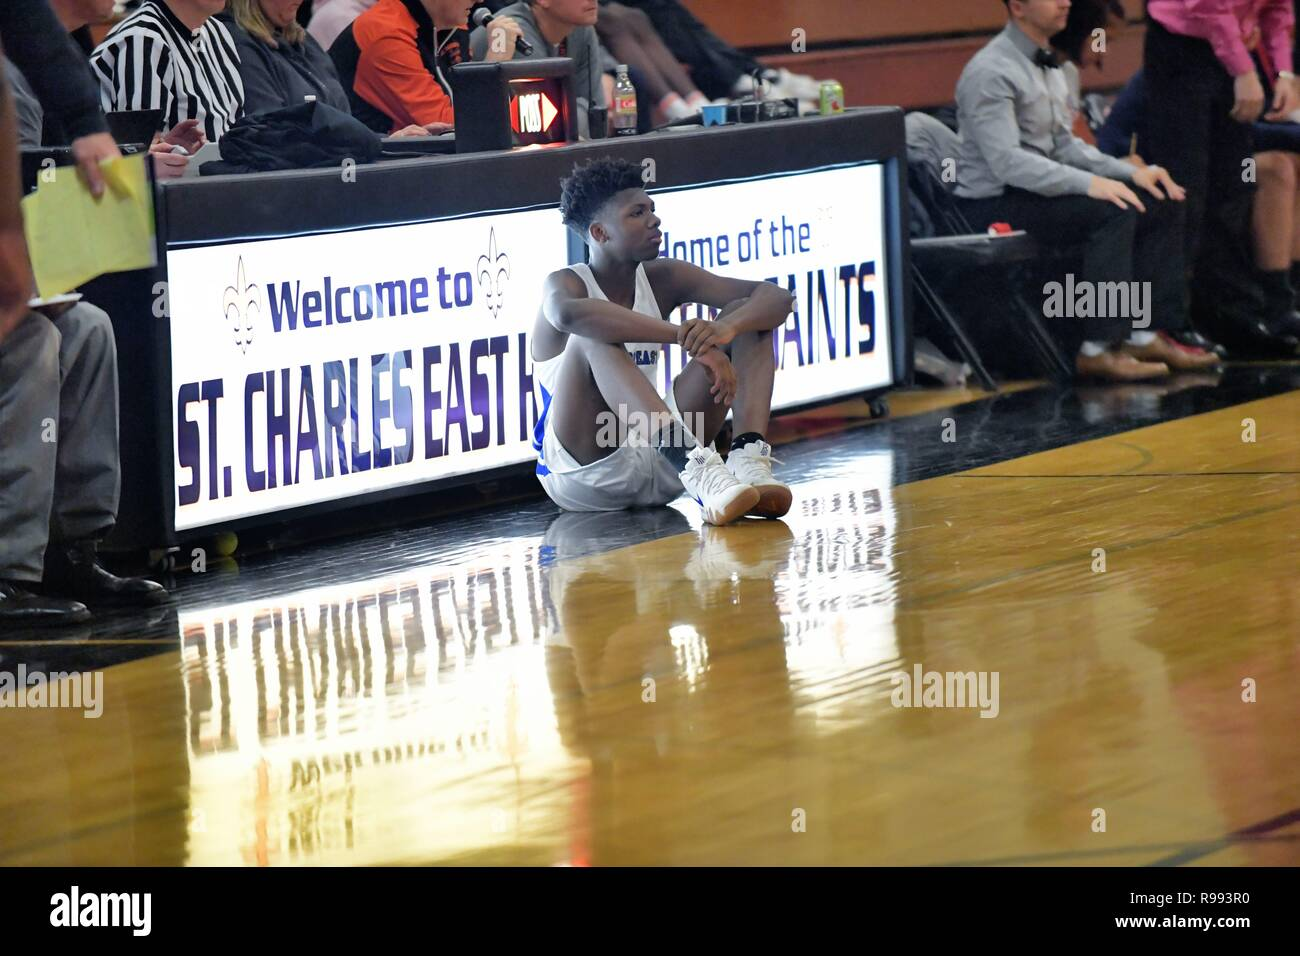 After checking in a the scorer's table, player waits to enter the game during the next pause in play. - Stock Image